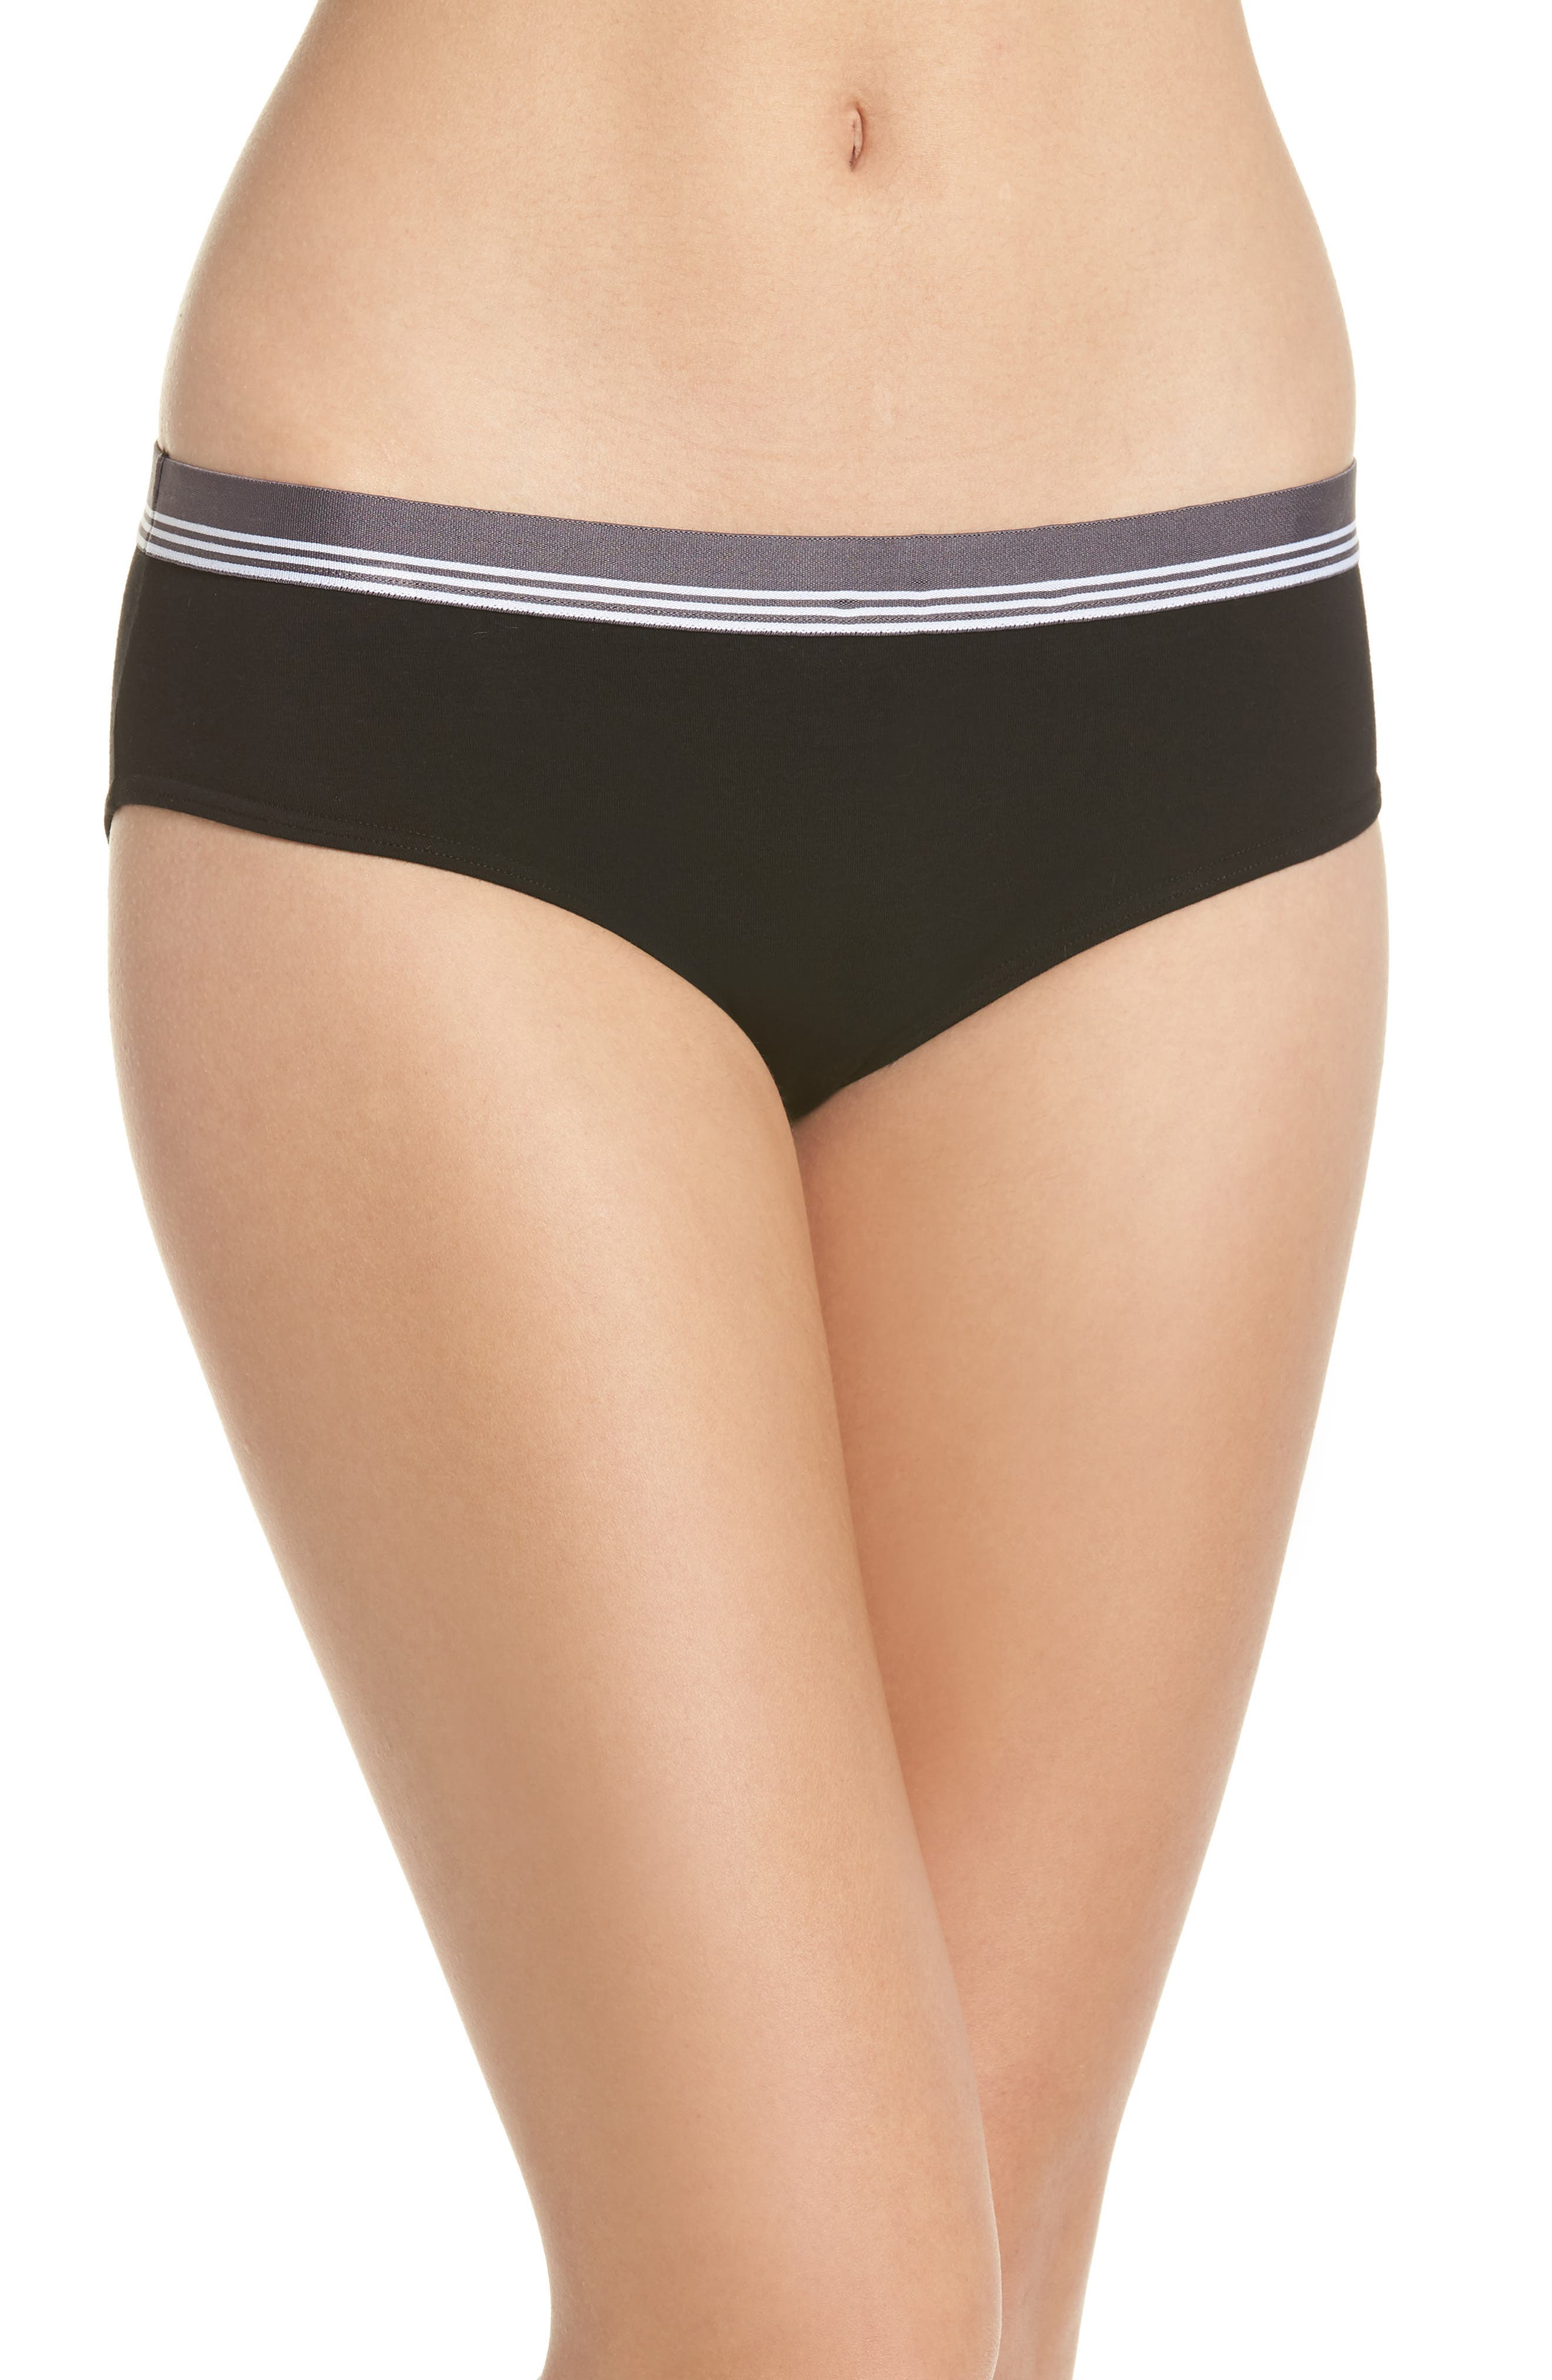 MAKE + MODEL, Sporty Hipster Briefs, Main thumbnail 1, color, BLACK